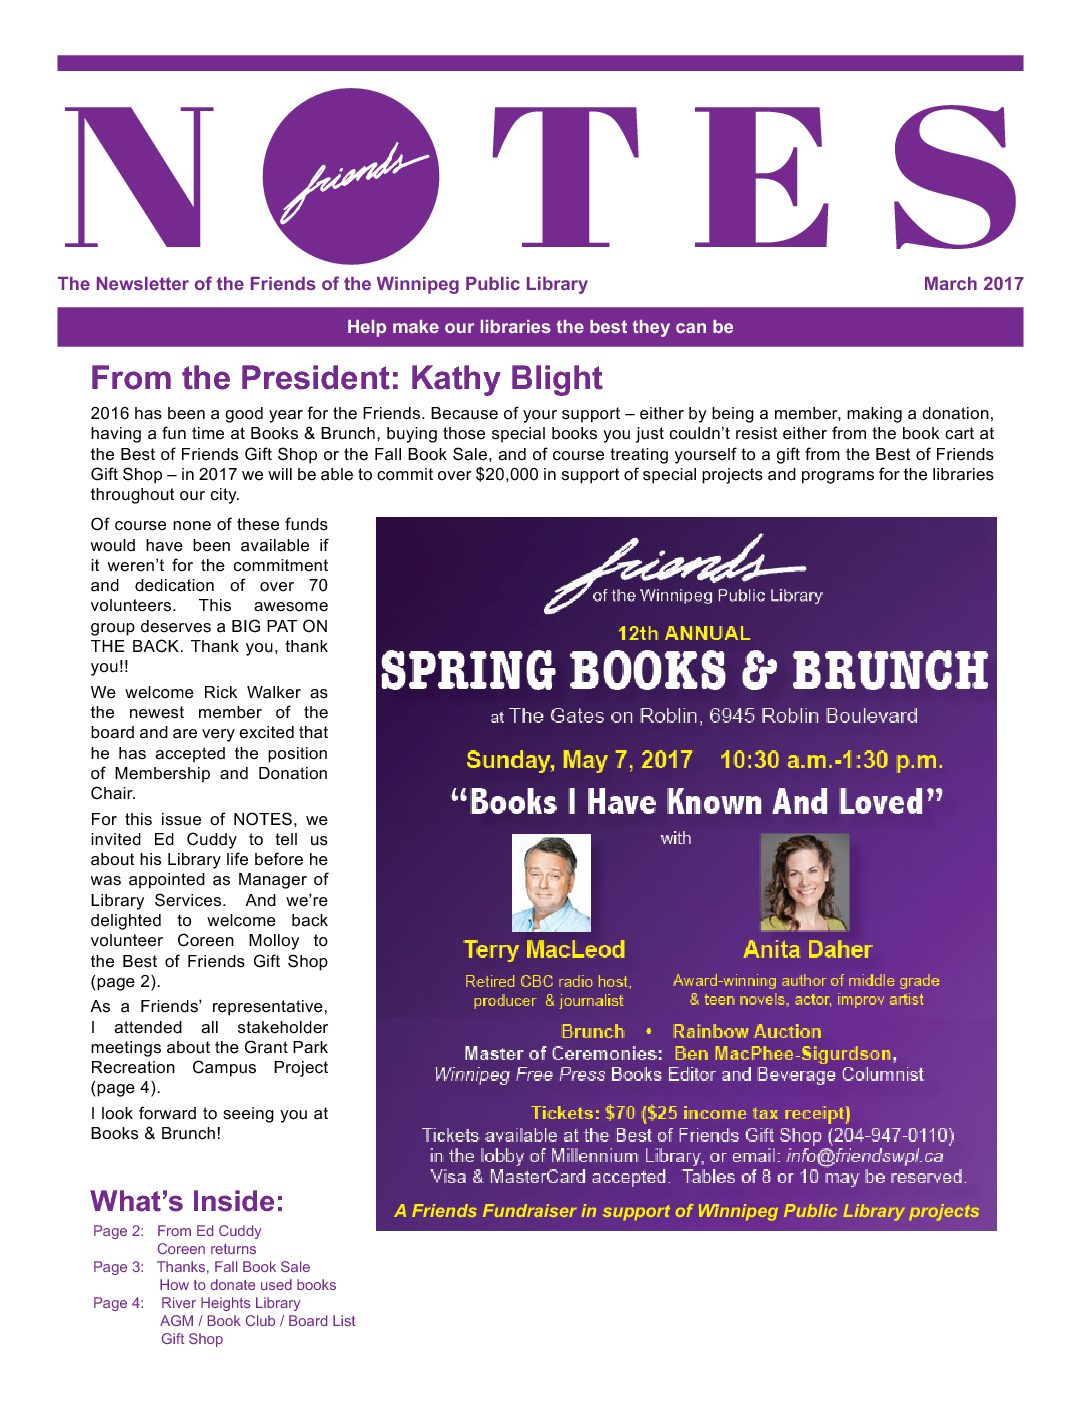 Image of Notes Newsletter March 2017